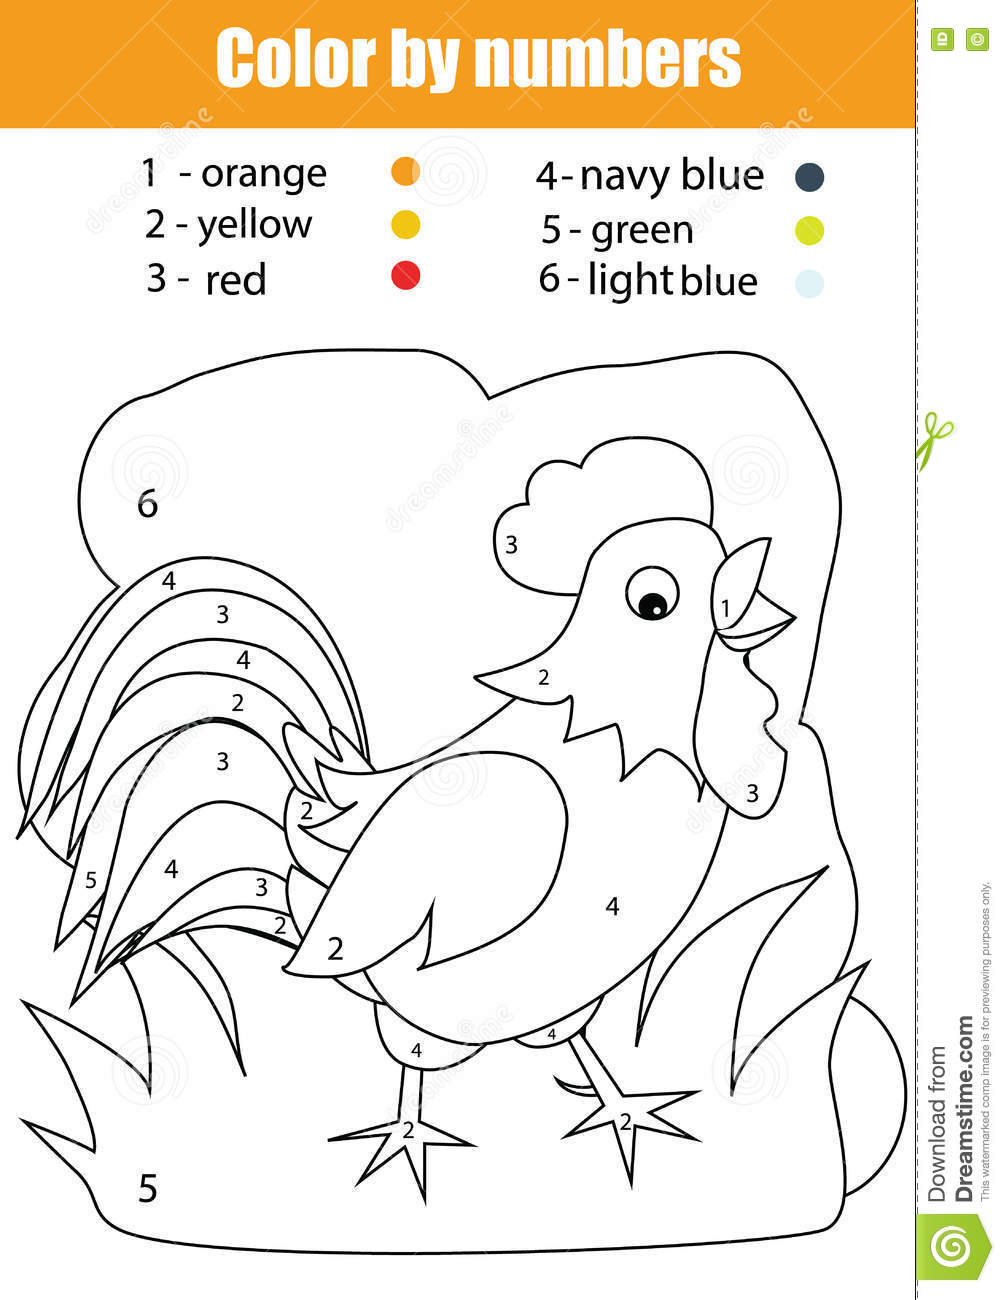 Free coloring pages rooster - Free Coloring Educational Kids Learning Nature Numbers Rooster With Rooster Coloring Pages